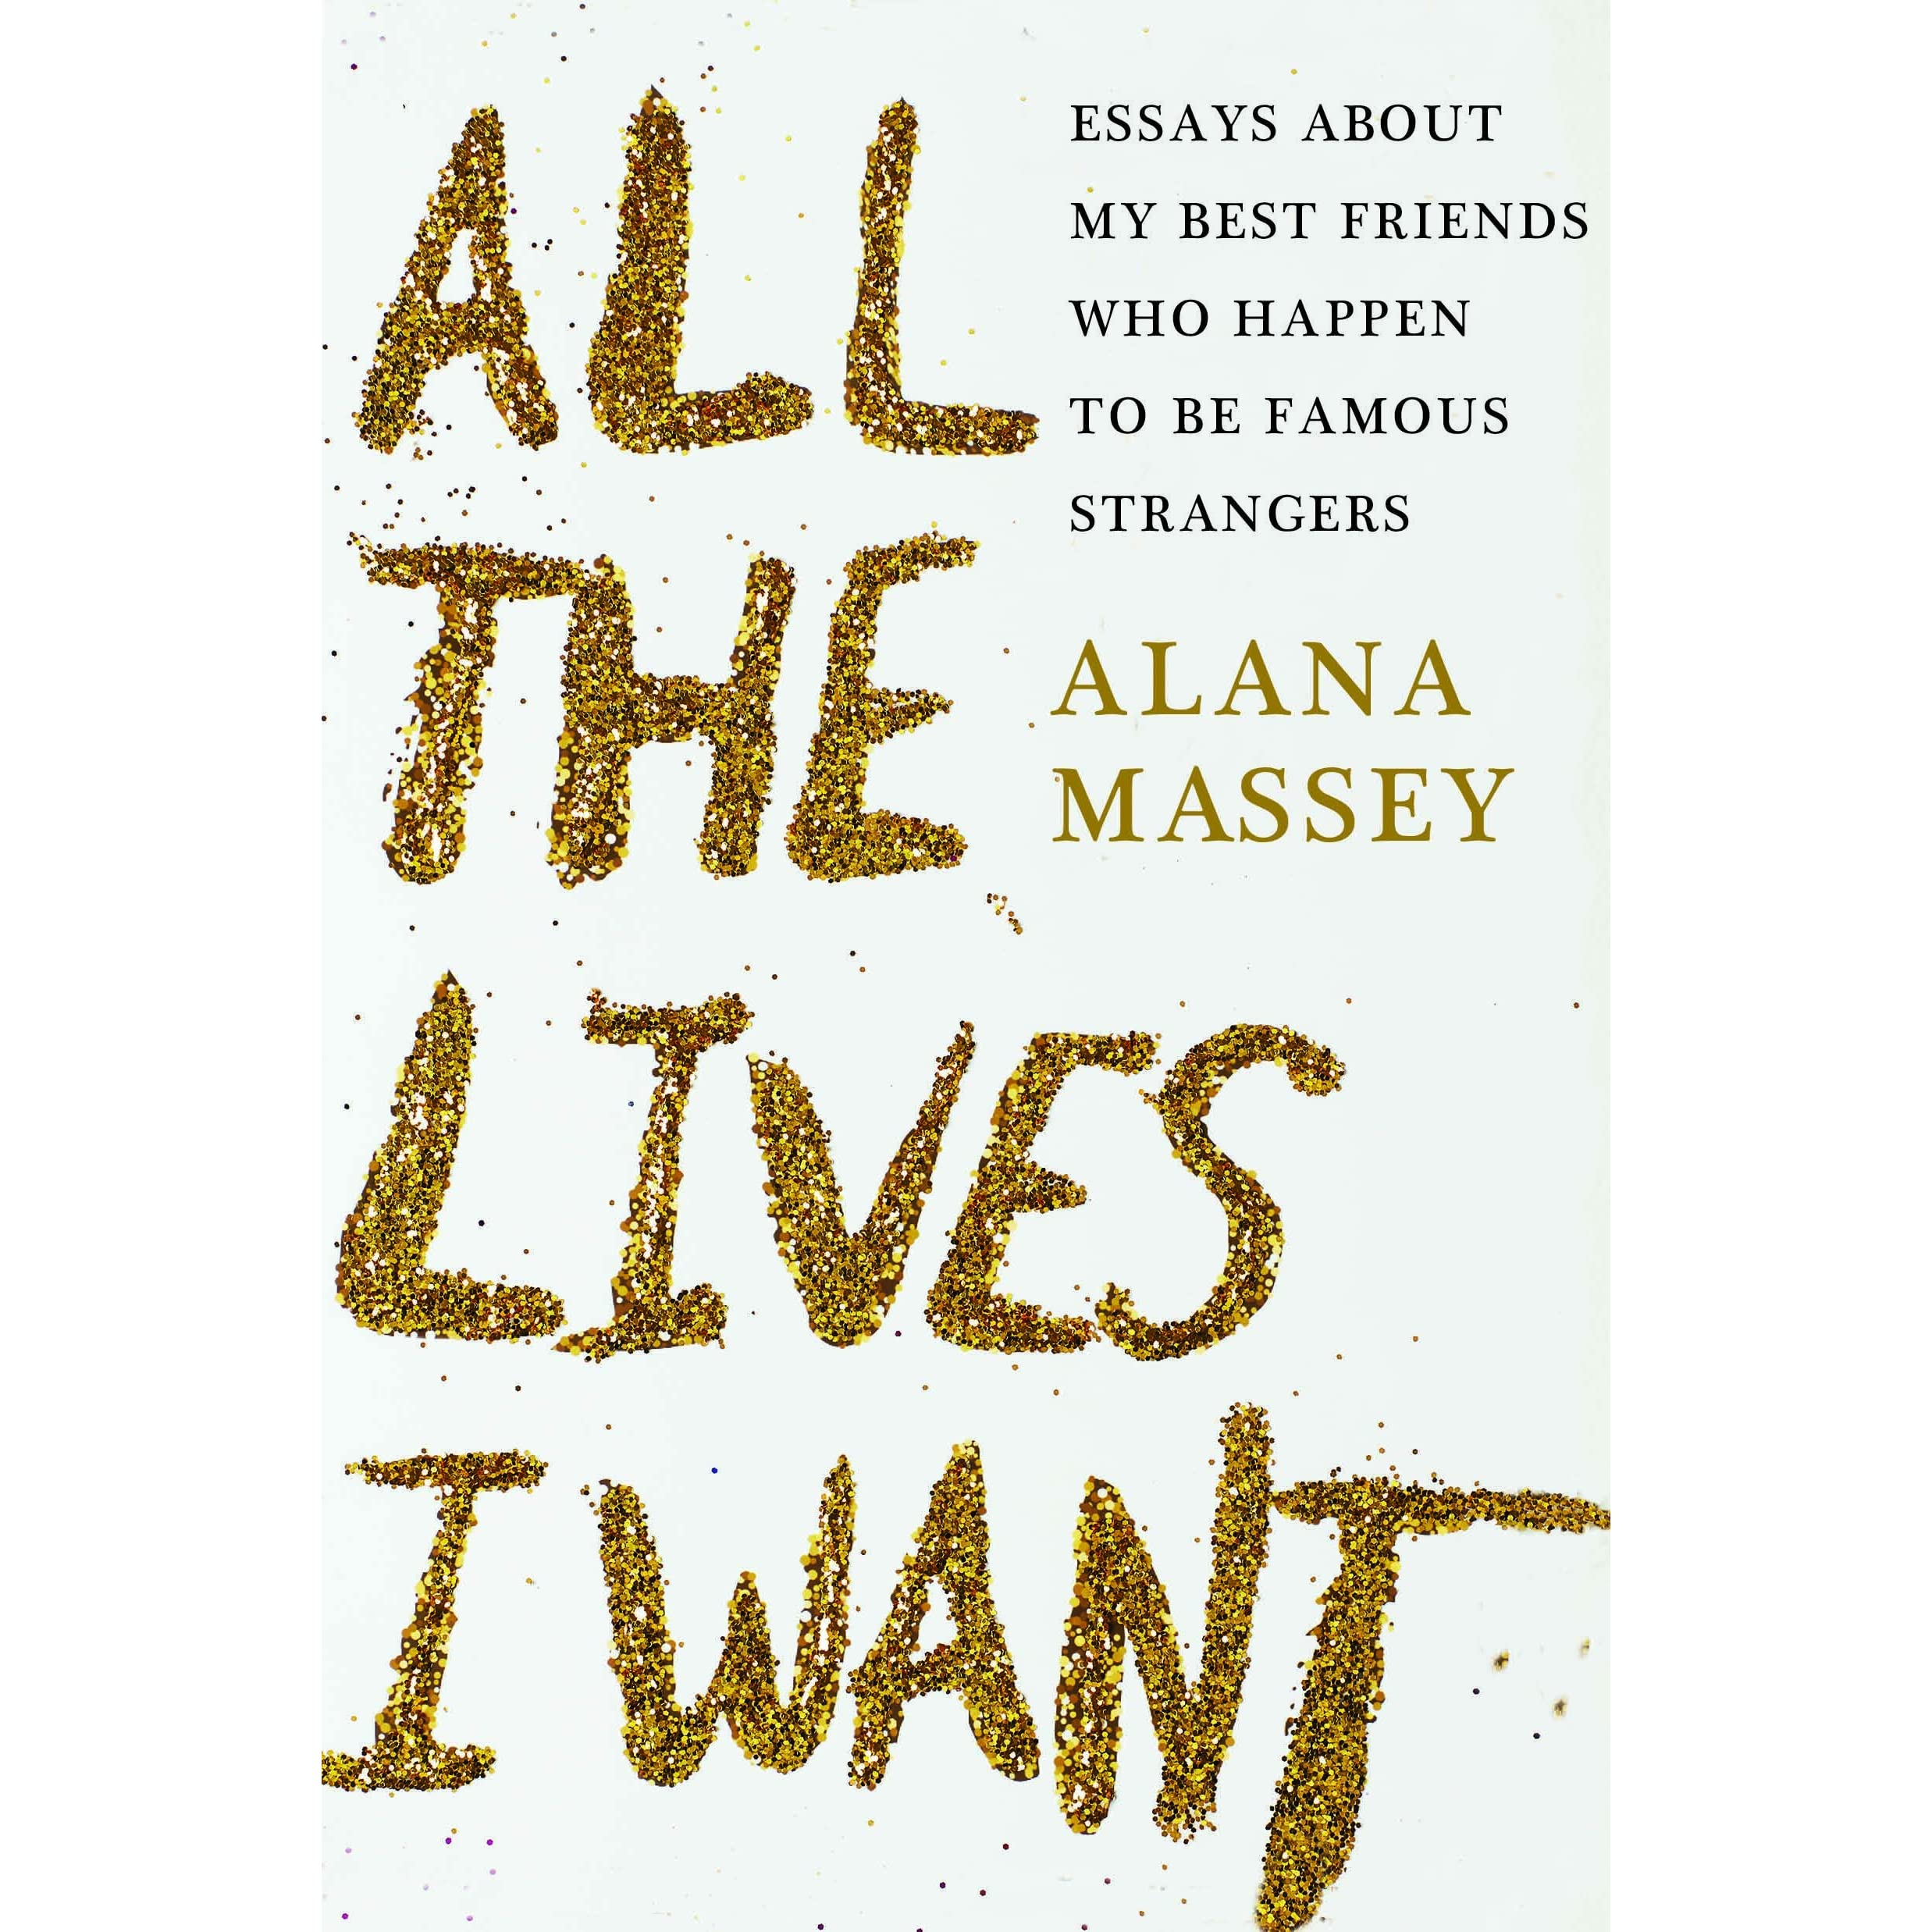 all the lives i want essays about my best friends who happen to all the lives i want essays about my best friends who happen to be famous strangers by alana massey